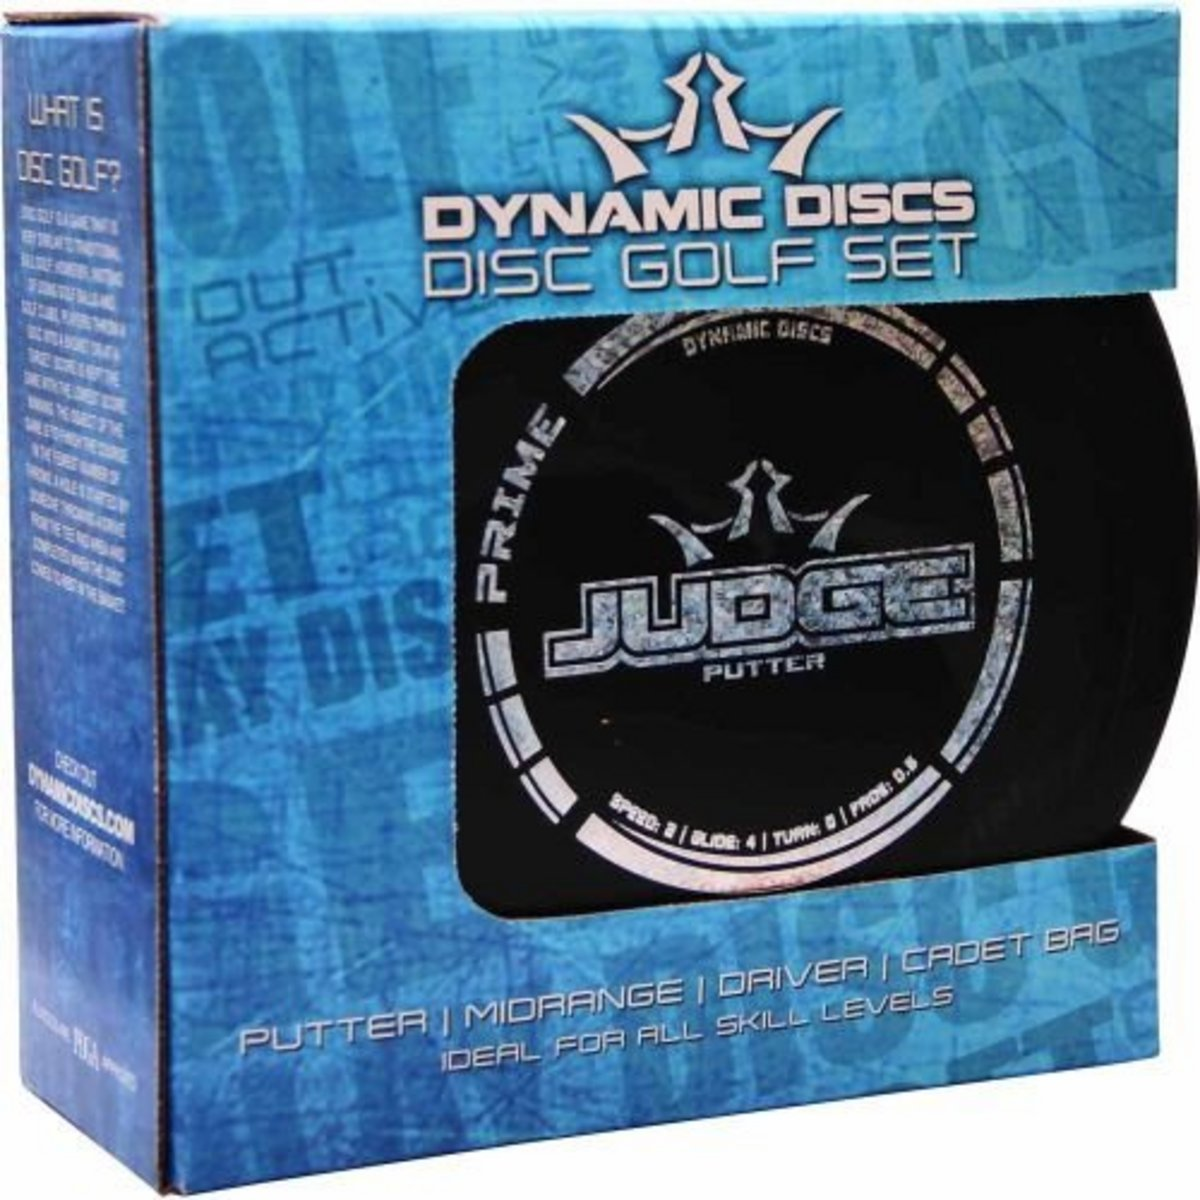 Dynamic Discs Starter Set With Cadet Bag